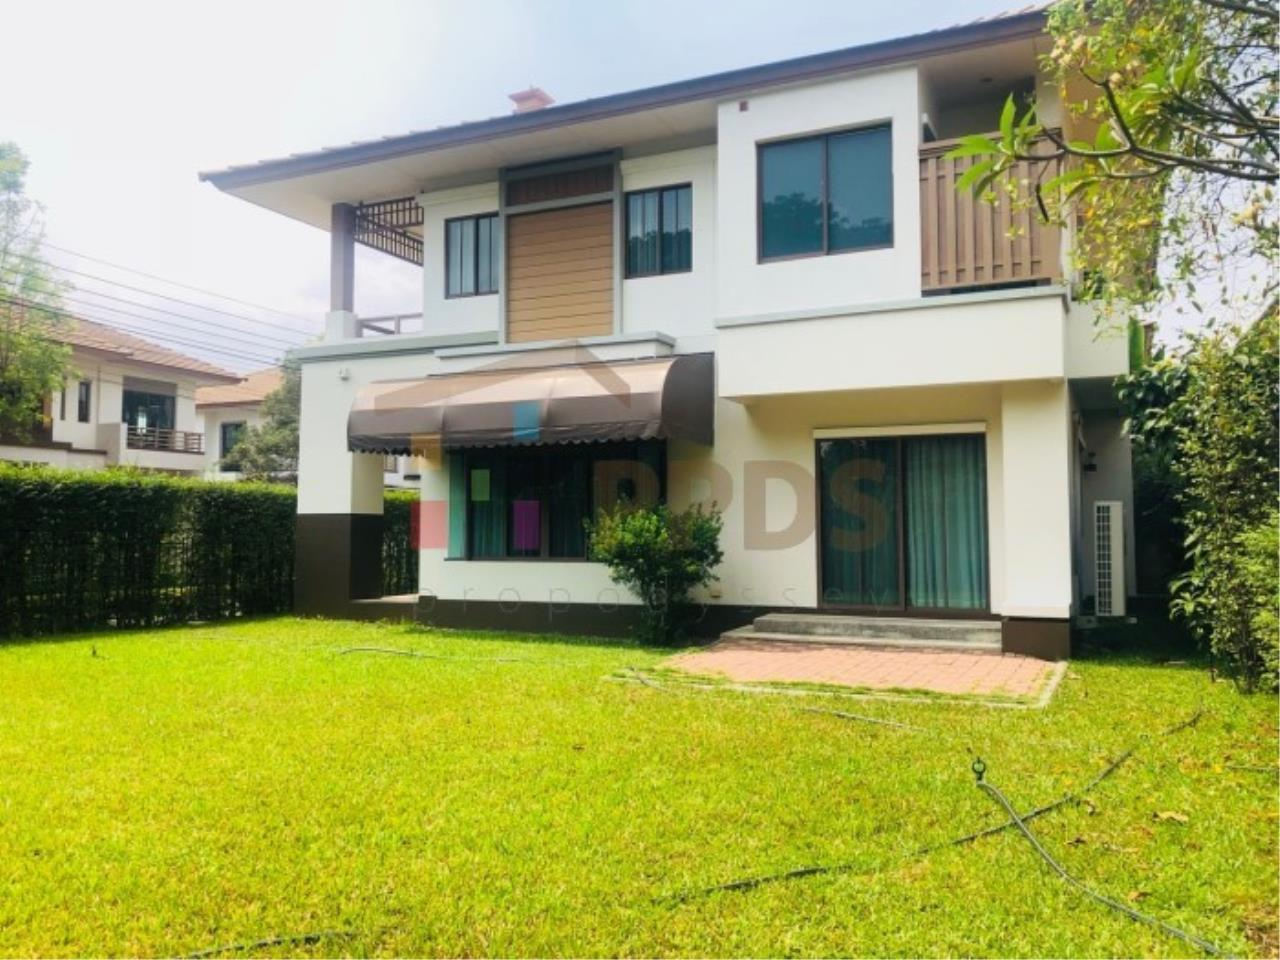 House for rent with a big yard 3 bedrooms very close to Mega Bangna and Concordian School